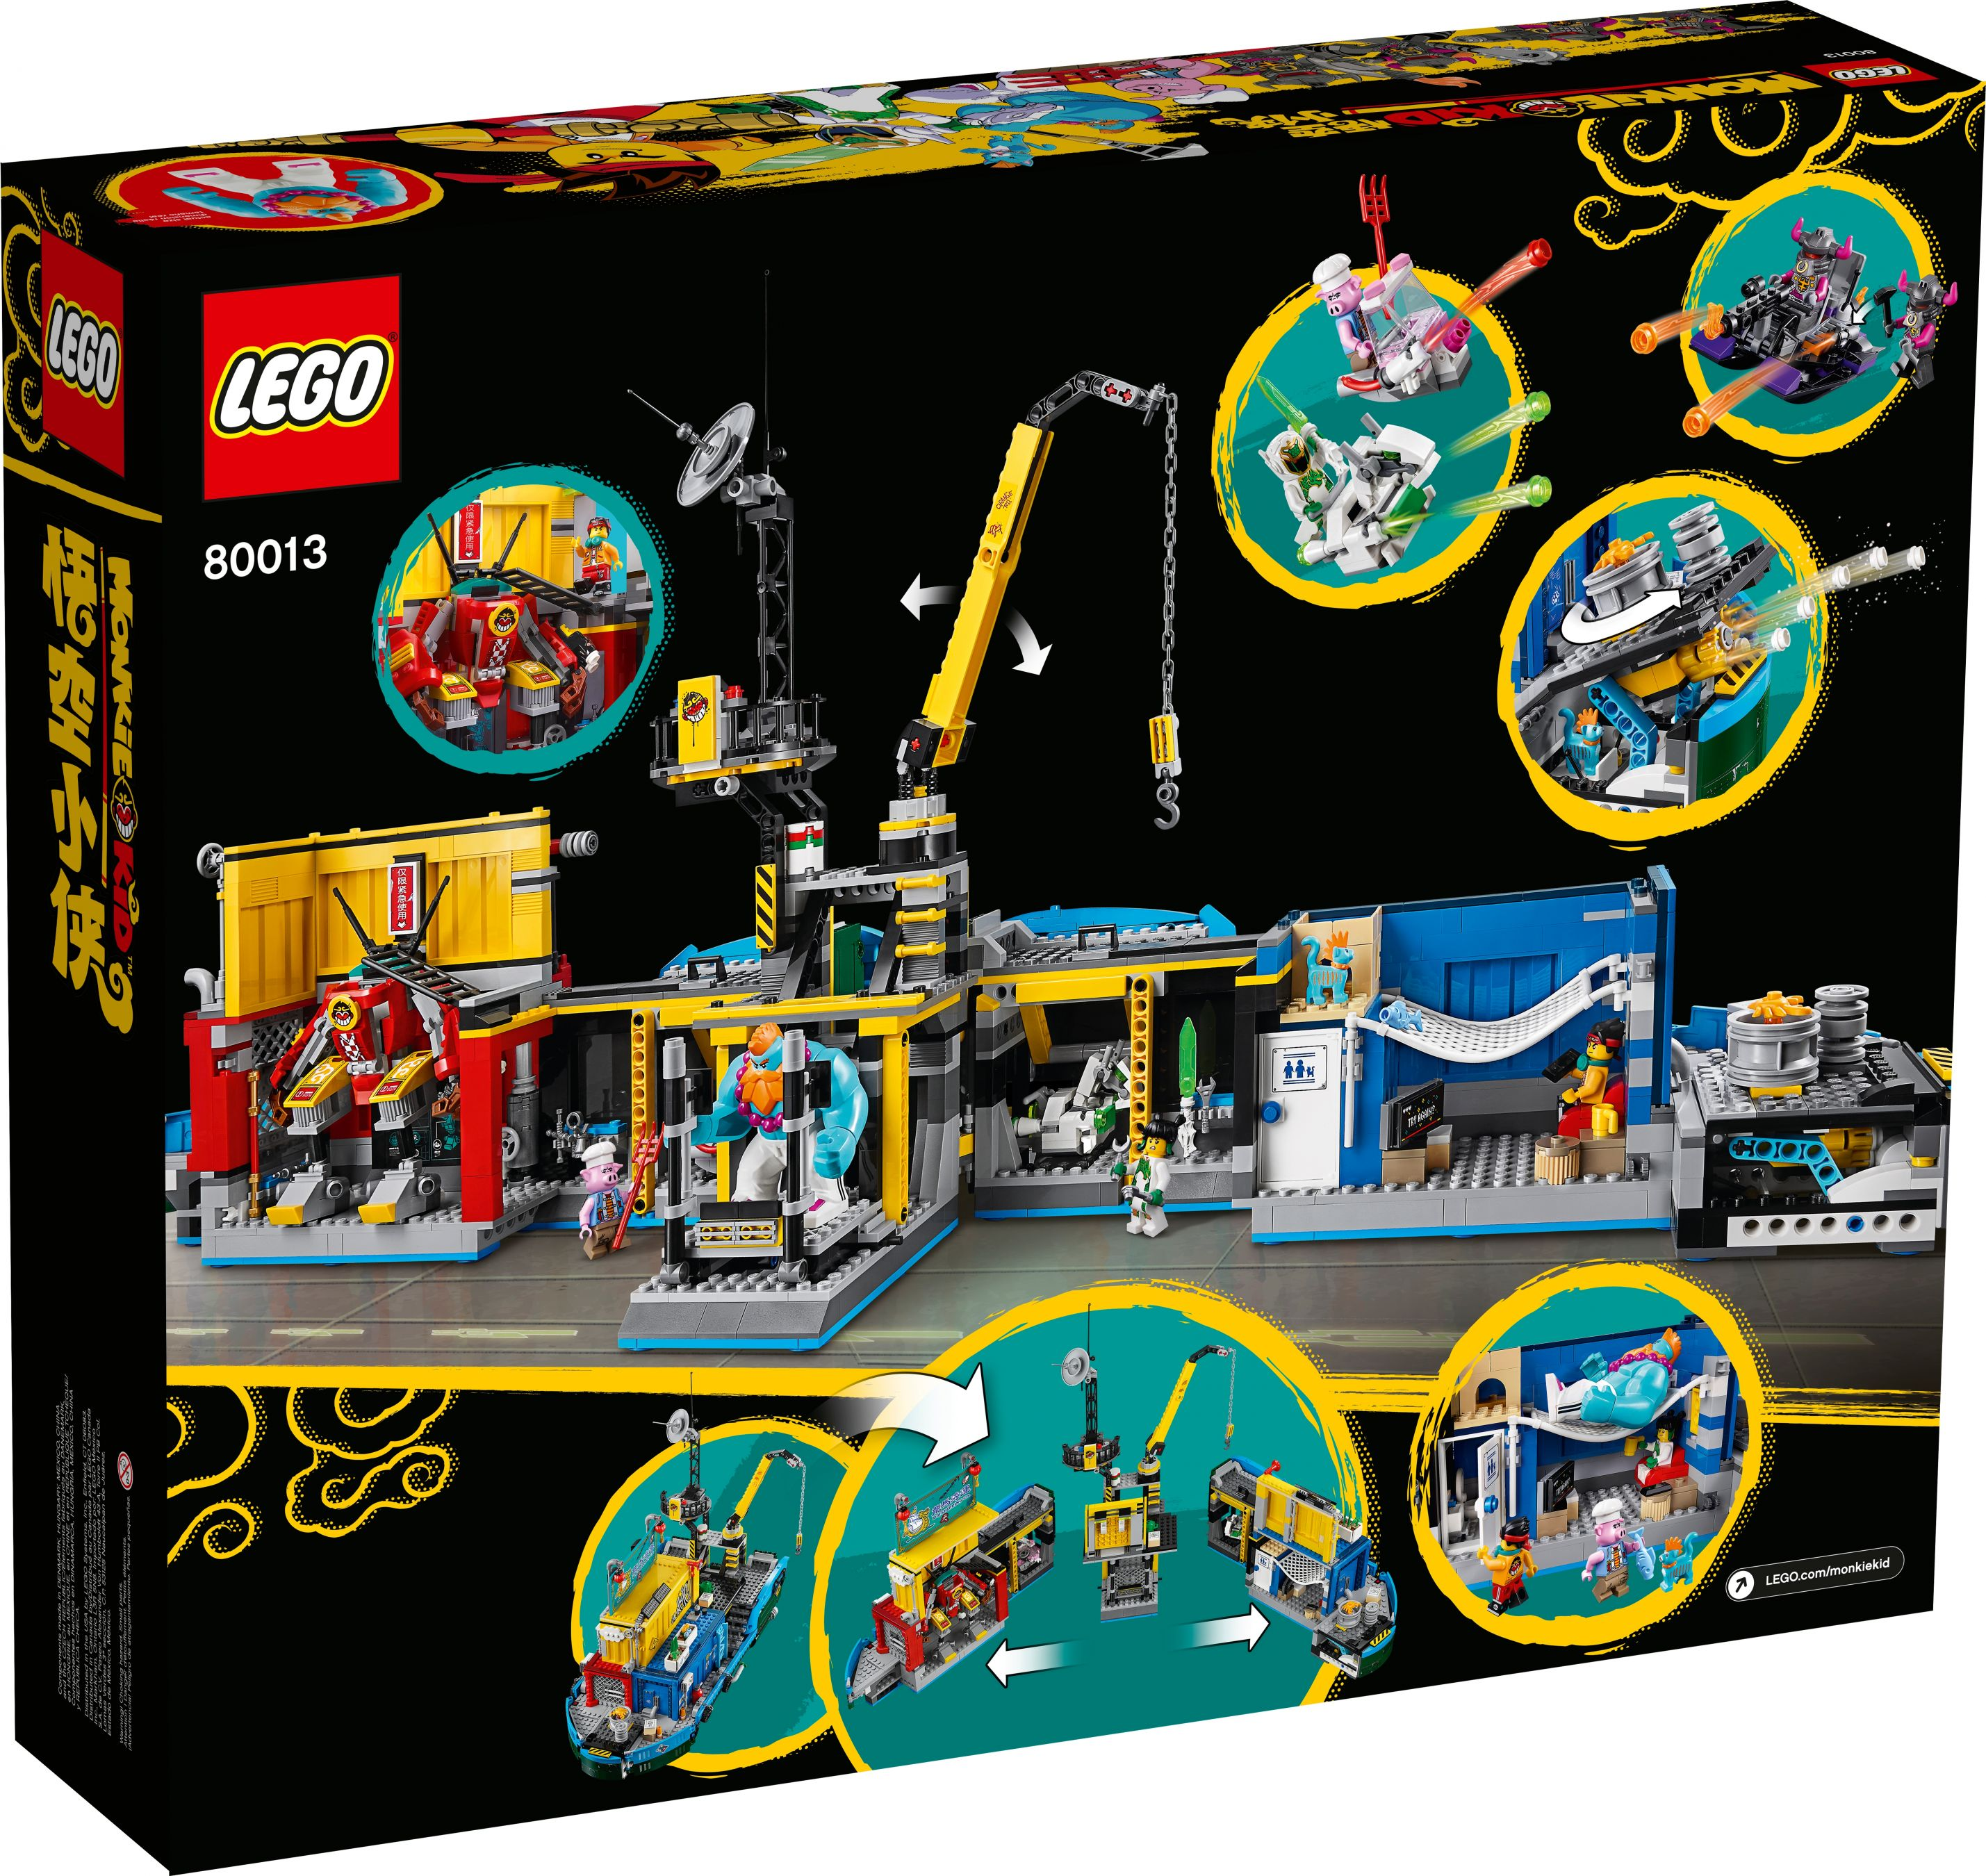 LEGO Monkie Kid 80013 Monkie Kids geheime Teambasis LEGO_80013_alt8.jpg